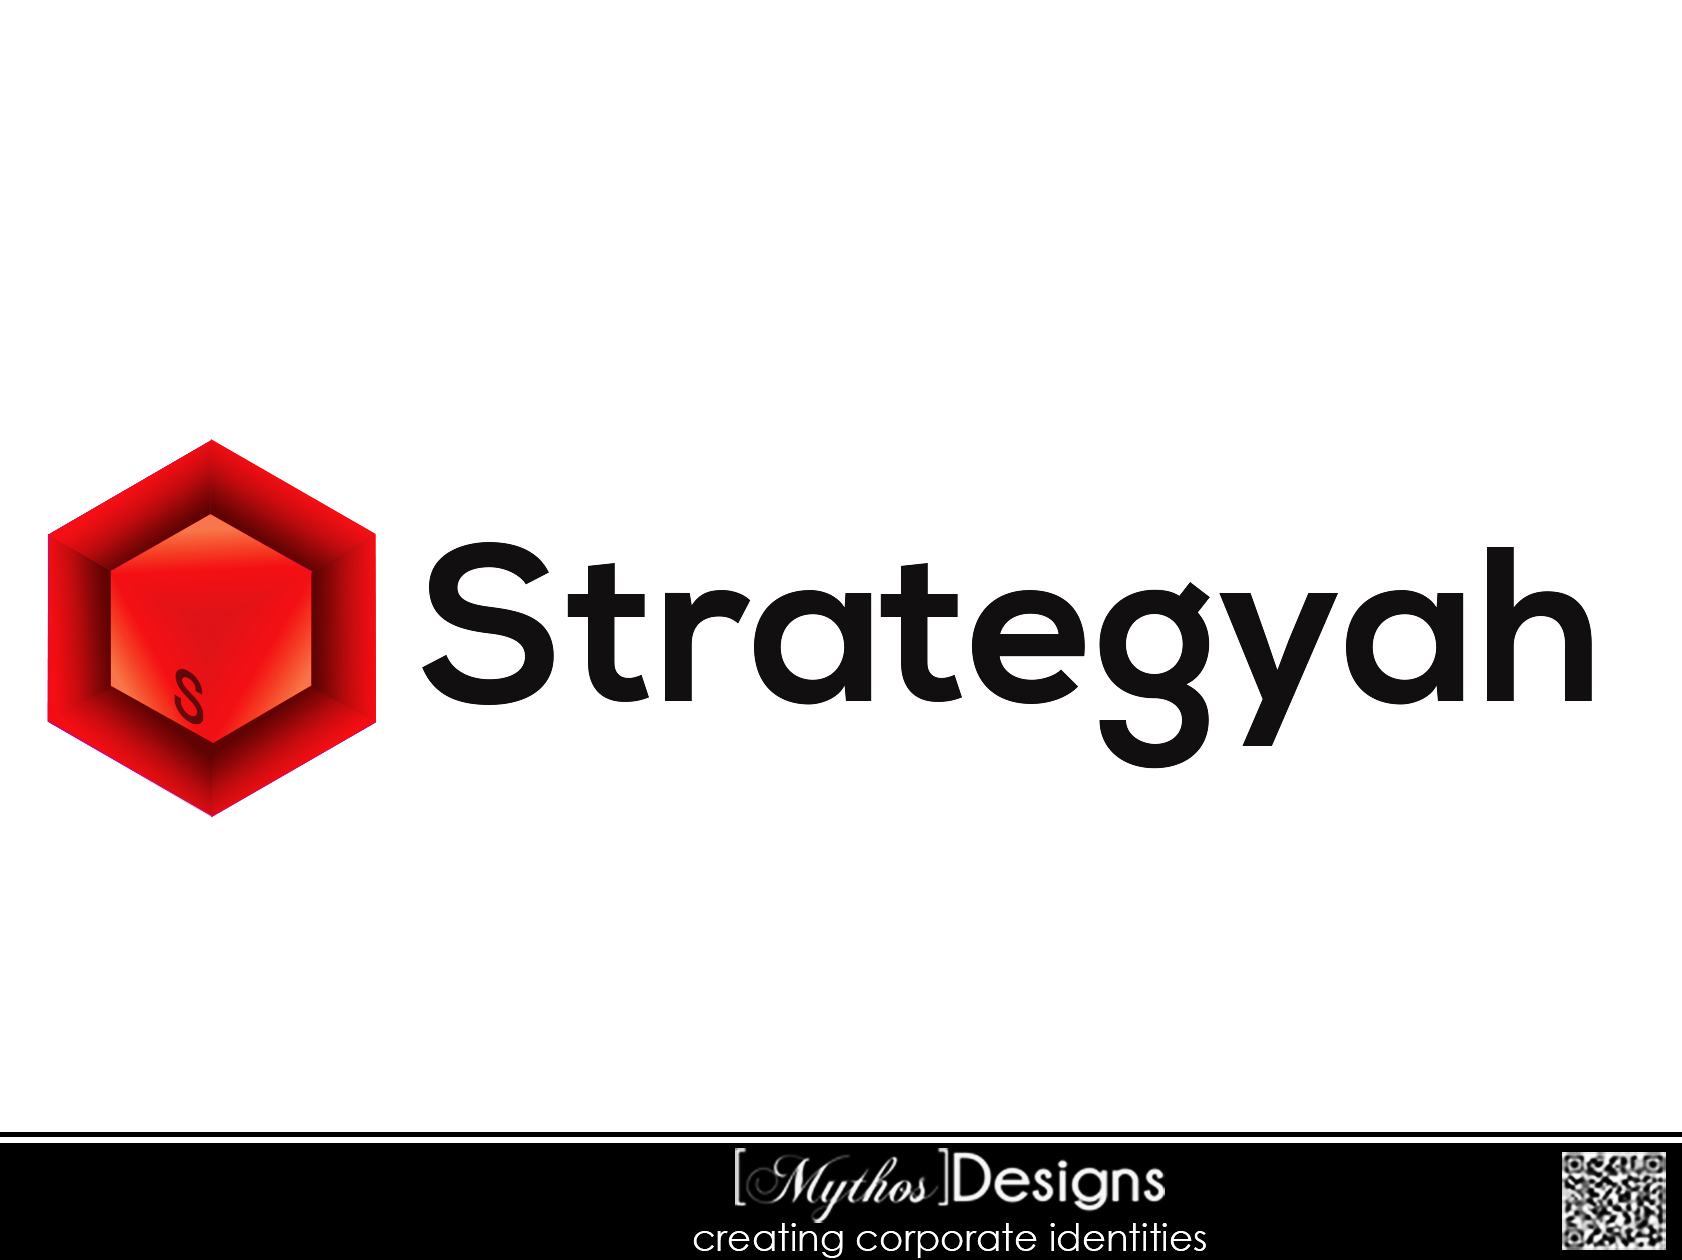 Logo Design by Mythos Designs - Entry No. 191 in the Logo Design Contest Creative Logo Design for Strategyah.